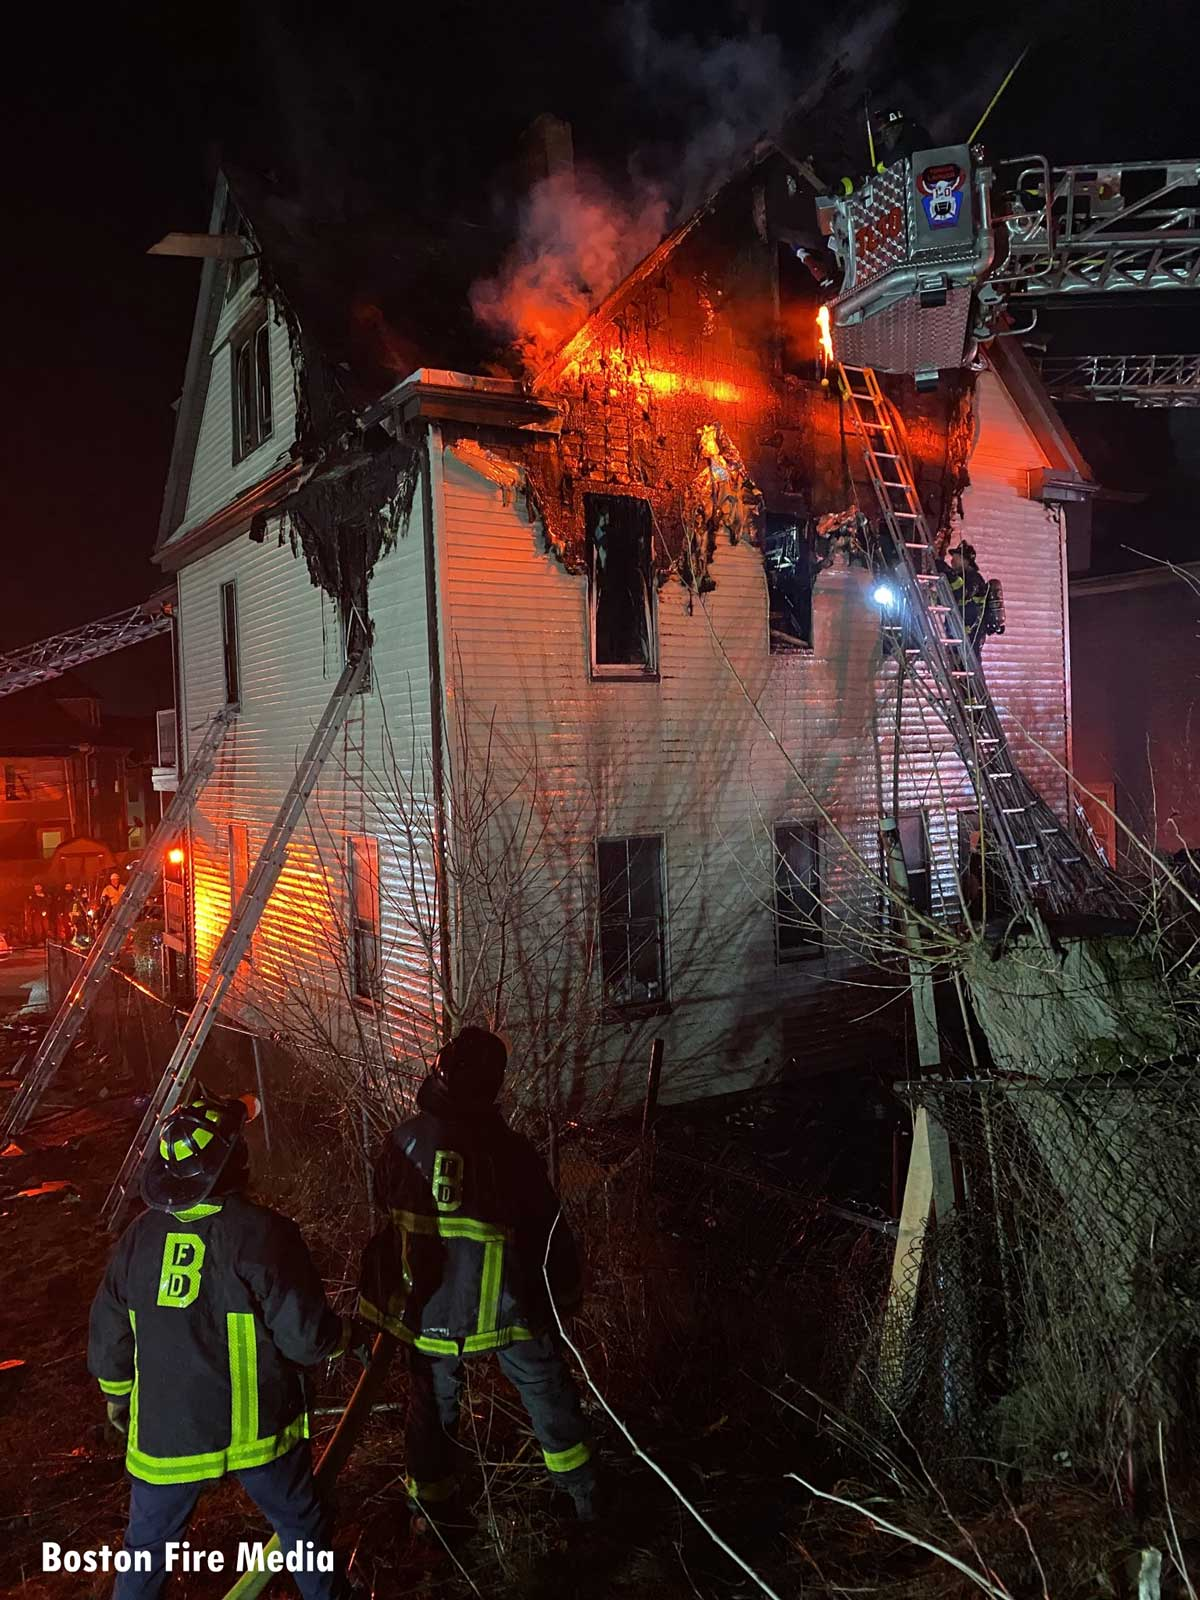 Firefighters operating at a major fire in Dorchester section of Boston